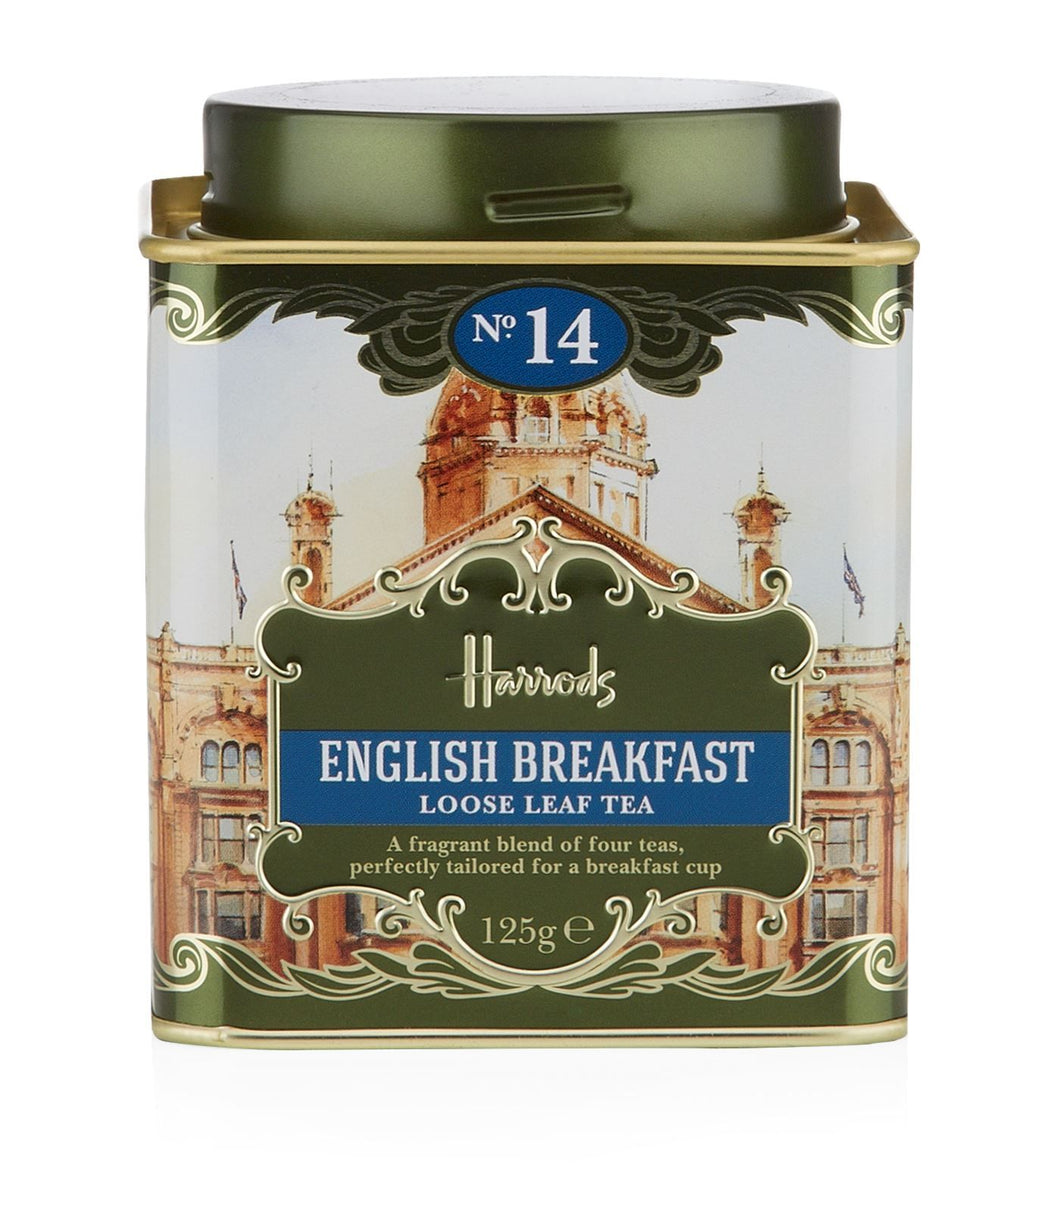 Harrods No. 14 English Breakfast Loose Leaf Tea (125g)